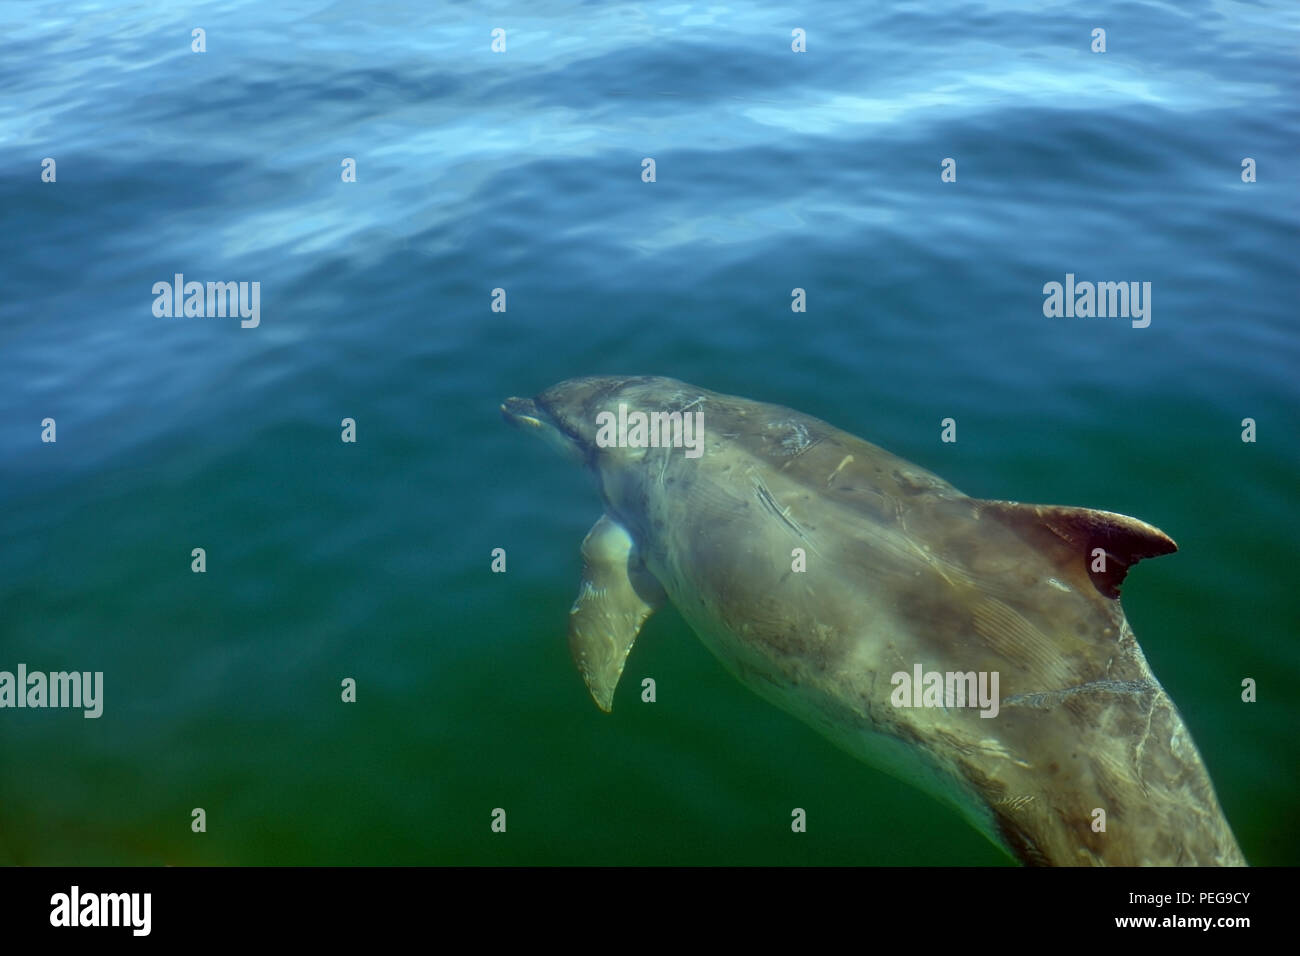 Bottlenose dolphin with scars and marks swimming in the clear waters around the Isle of Mull, Inner Hebrides, Scotland Stock Photo